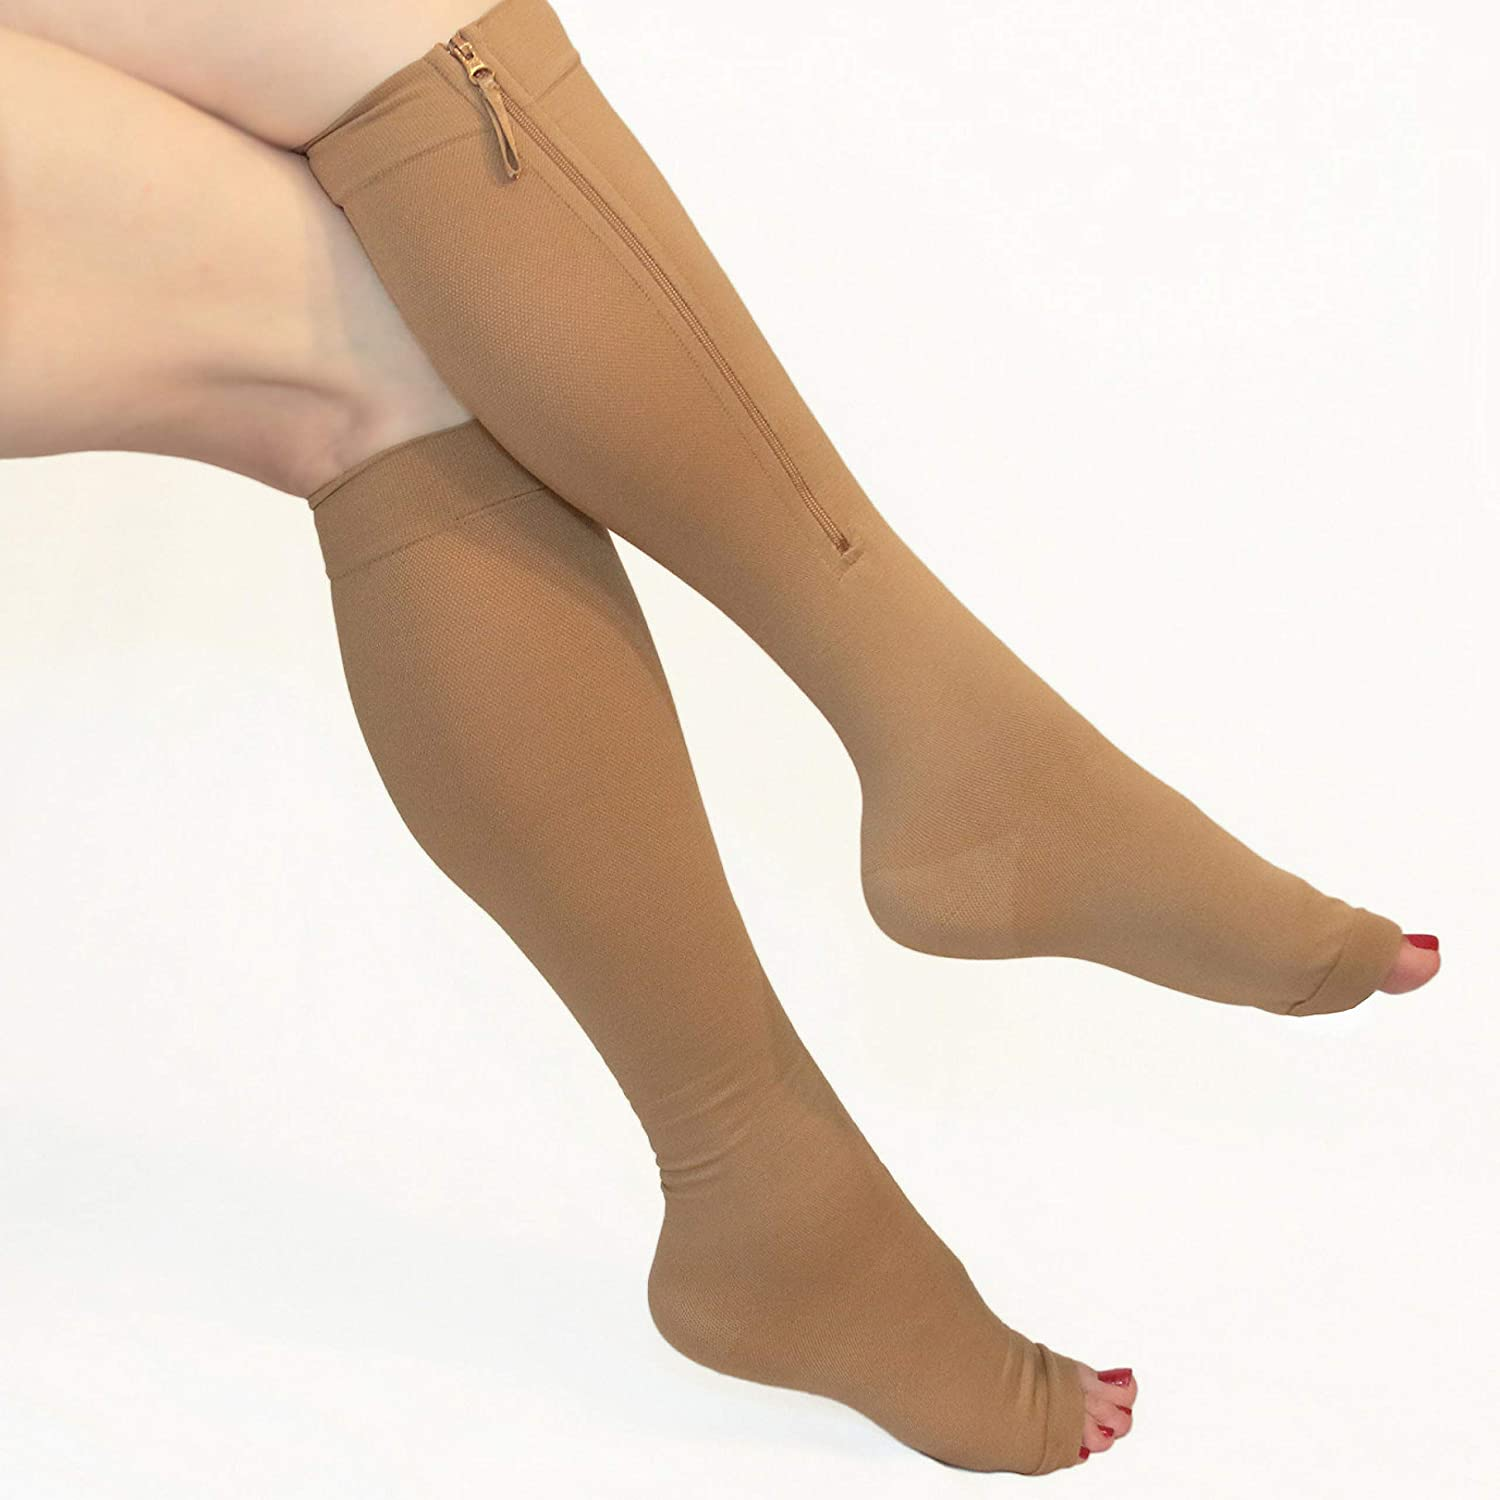 Compression Socks Varicose Veins DVT Pain Relief. Full Length Zip Up